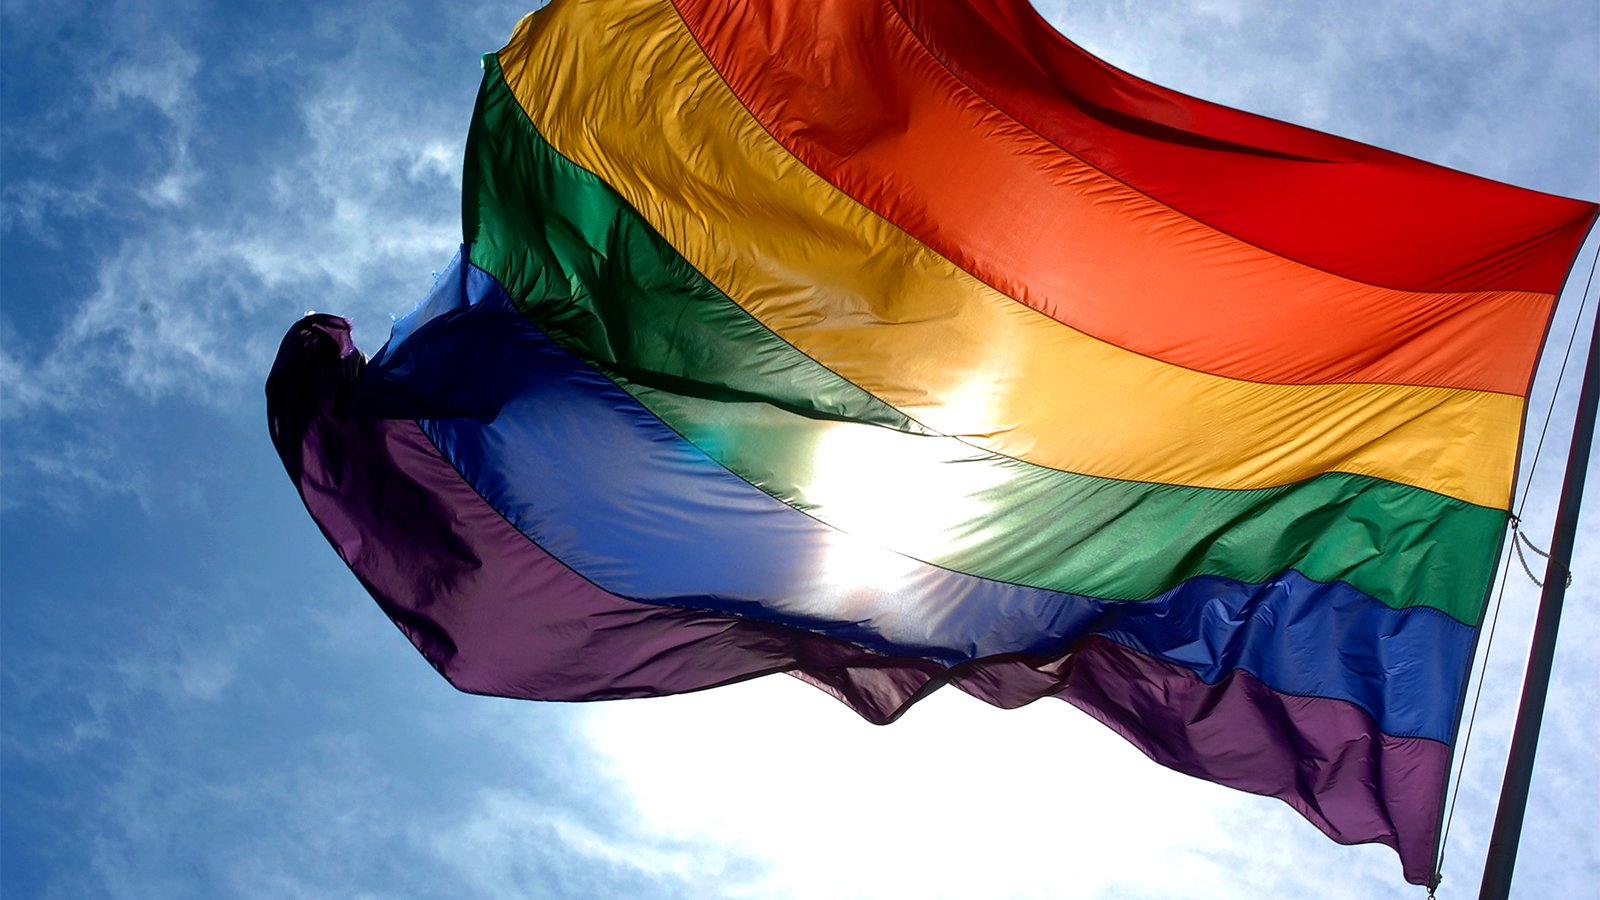 LGBT workers may feel impact of Hobby Lobby ruling